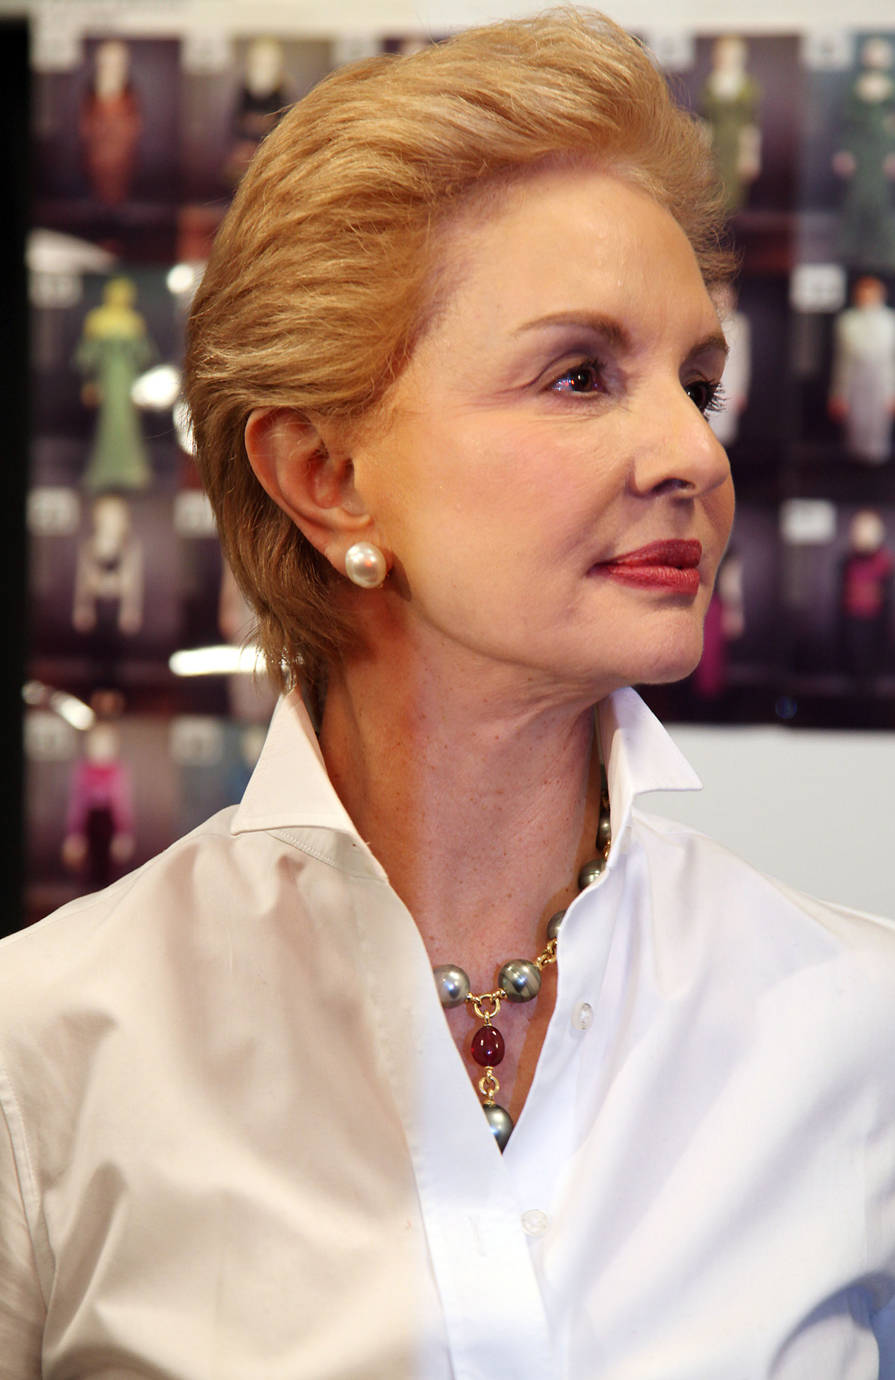 Carolina Herrera Style - White Blouse and Jewels